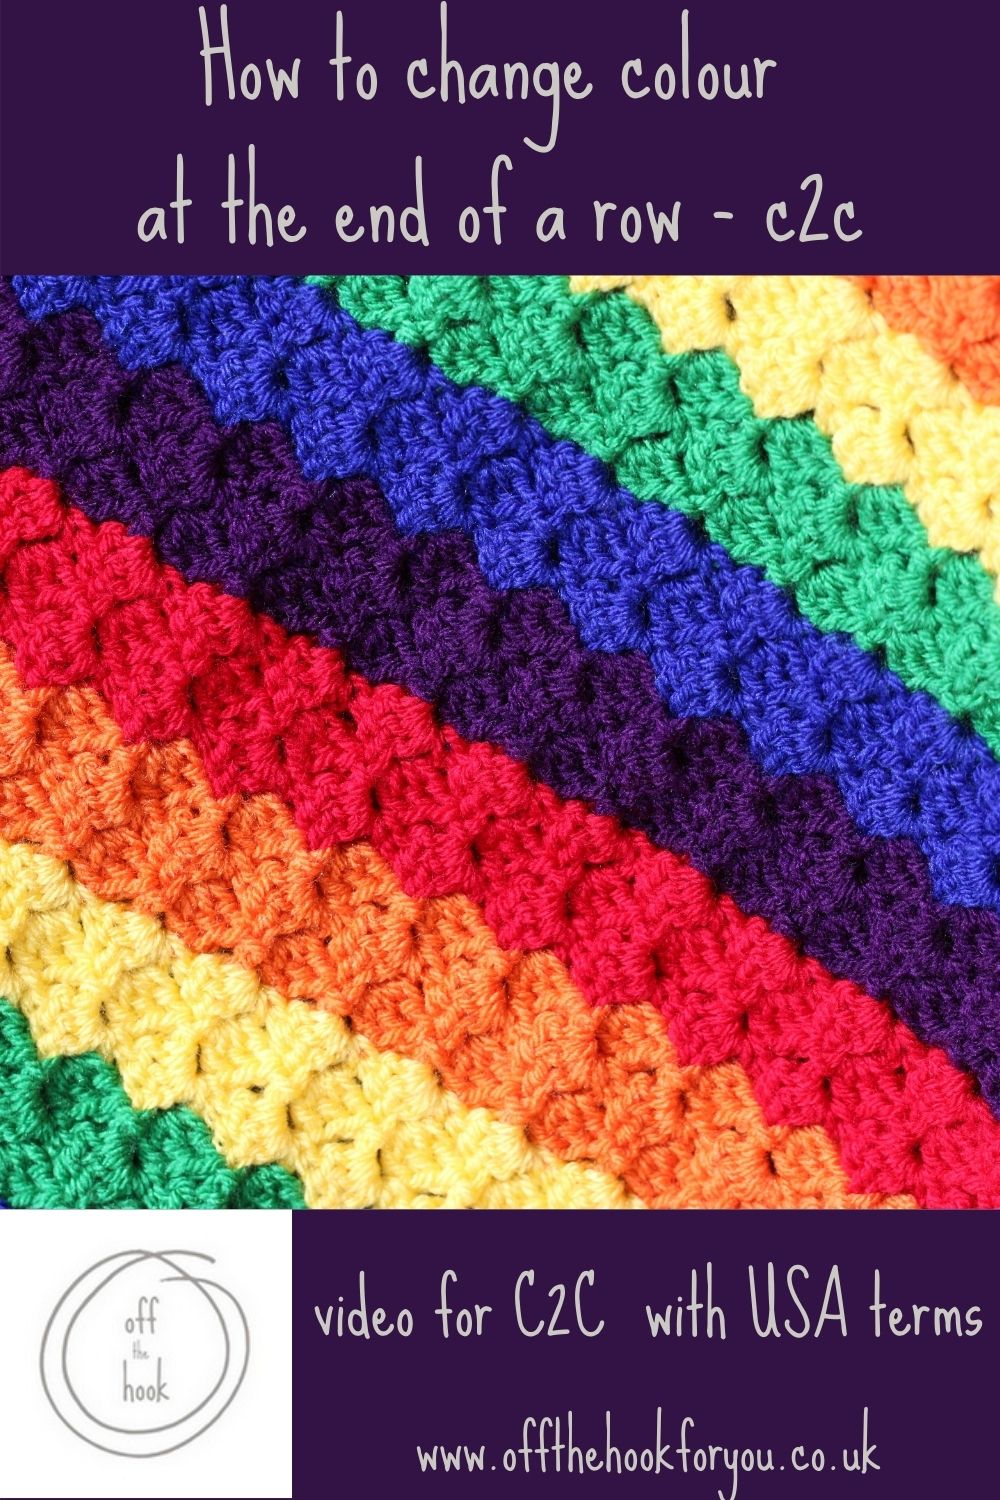 how to change colour in C2C crochet